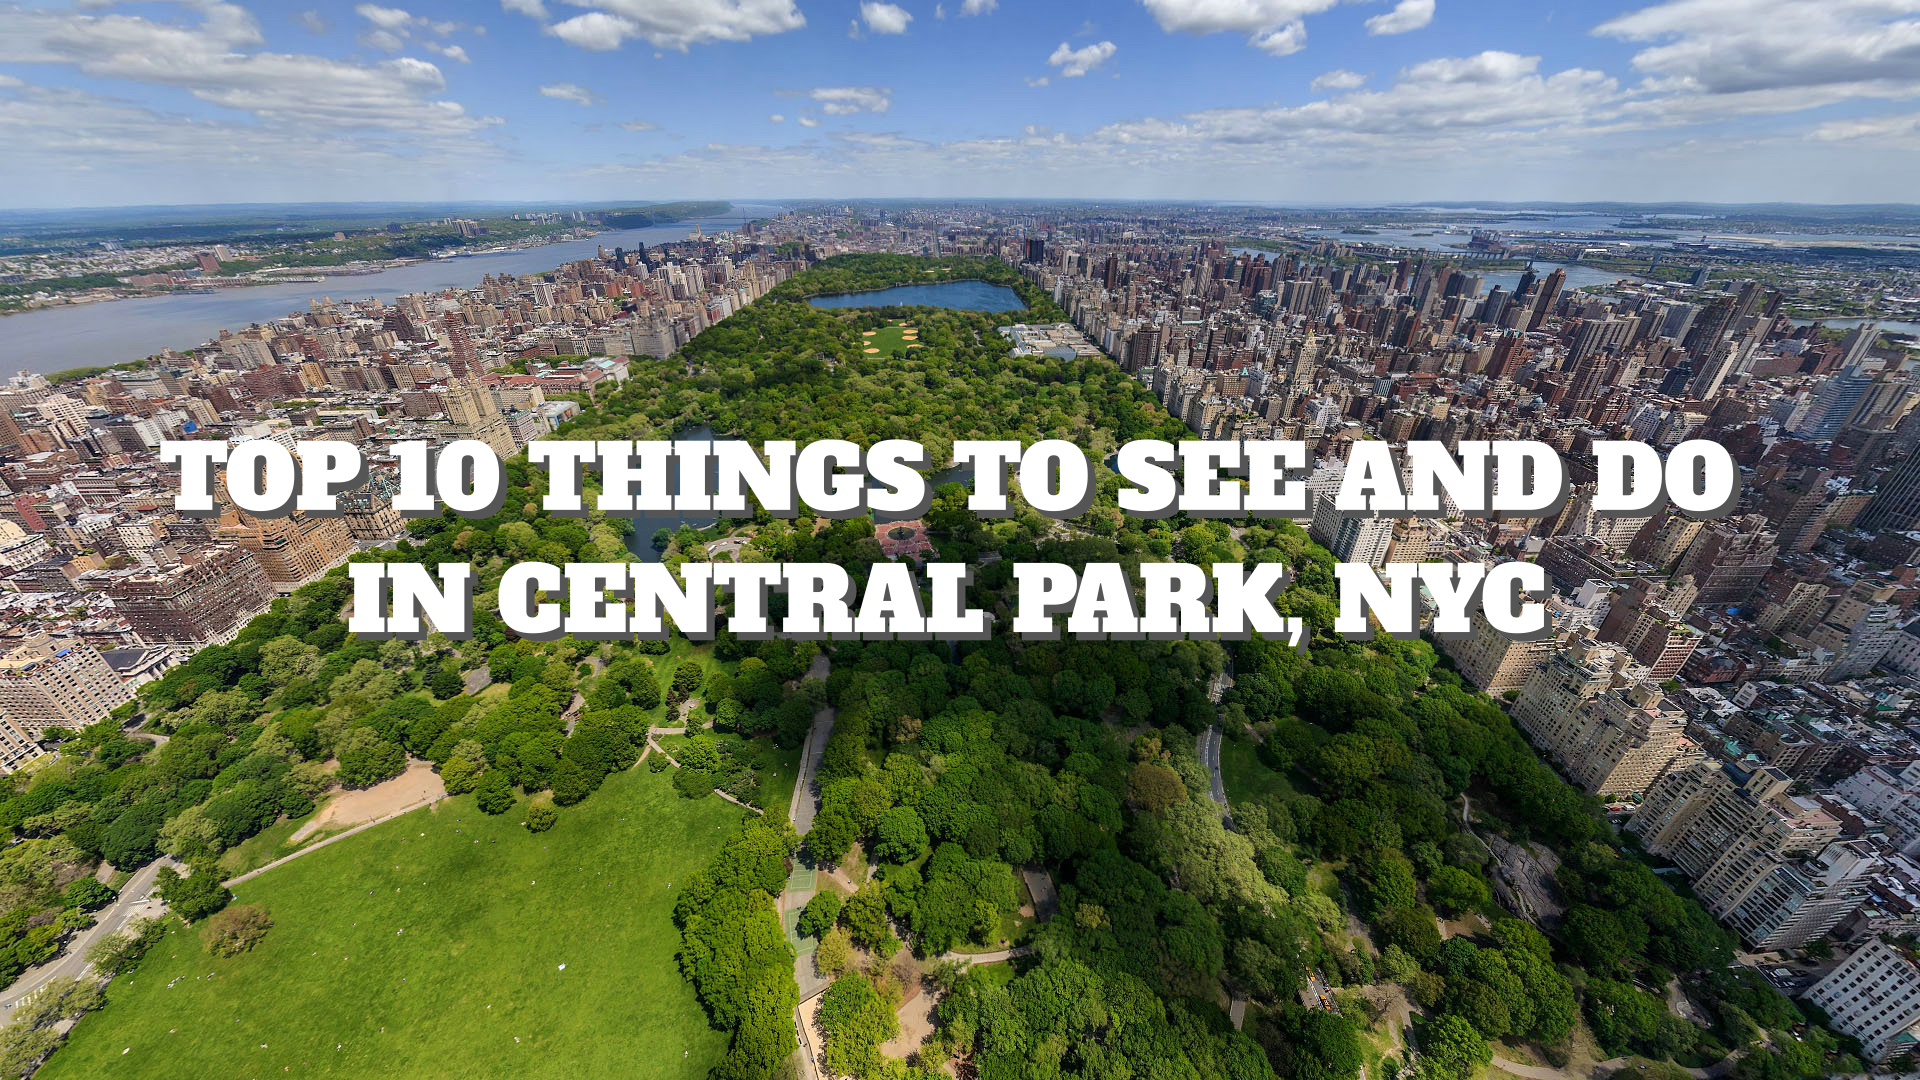 Top 10 things to see and do in central park nyc places for Things to do in nyc manhattan